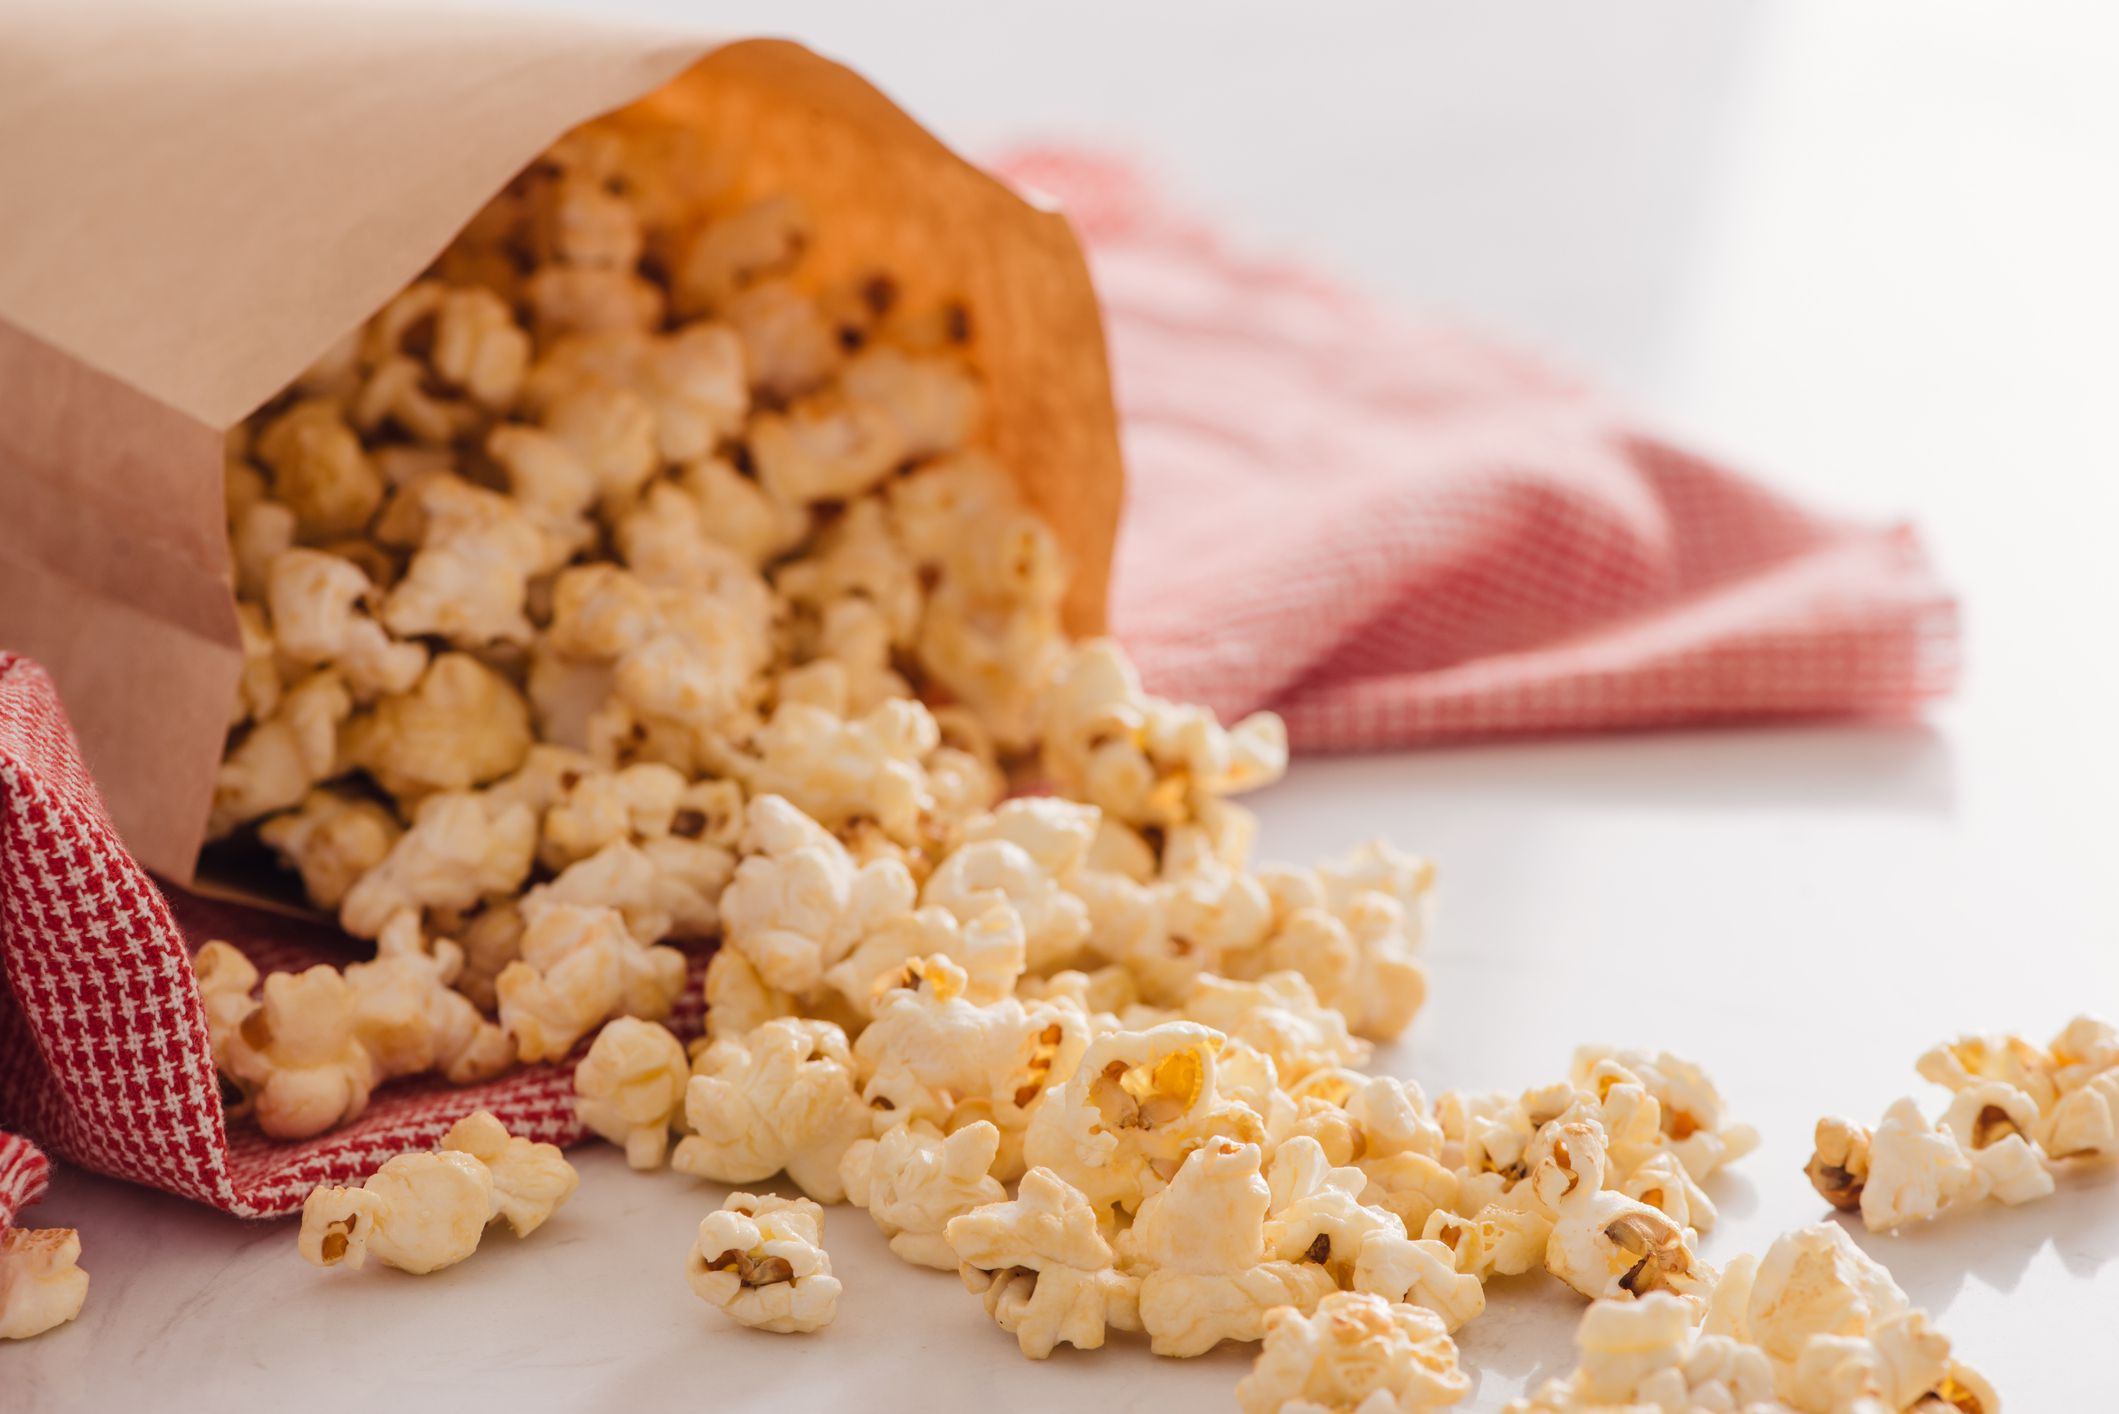 is microwave popcorn a risk for cancer